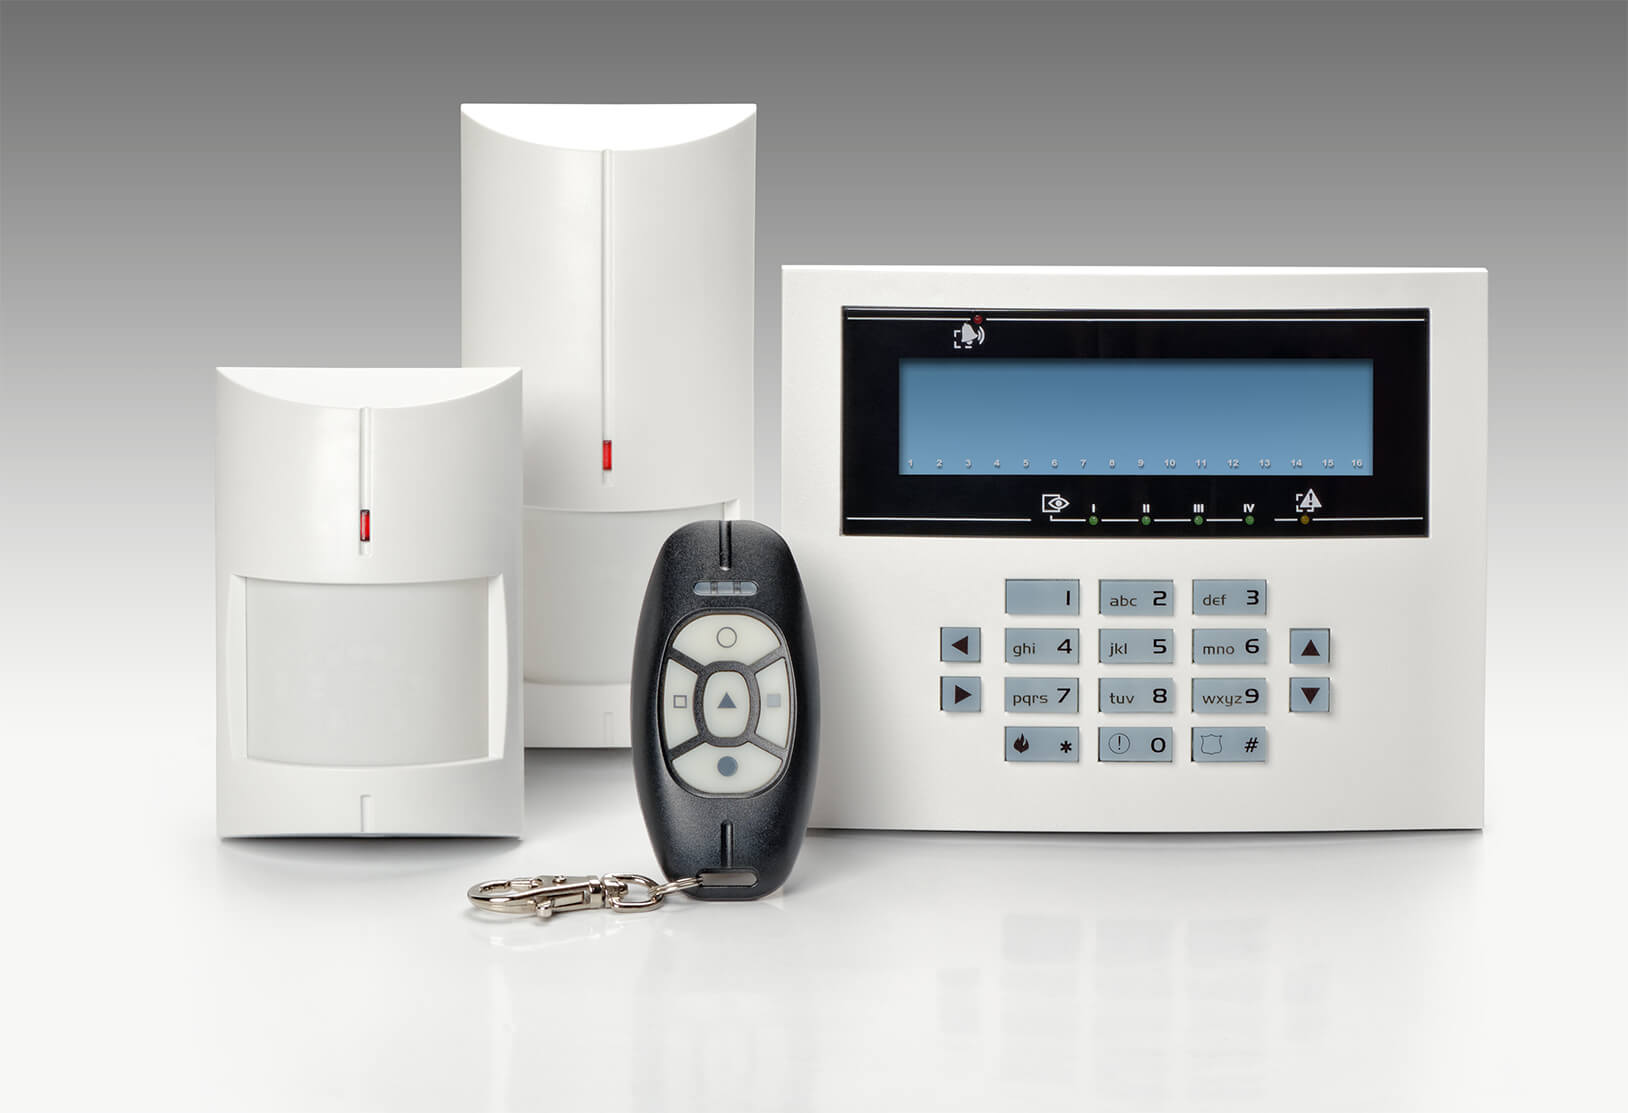 Business & Residential NACOSS Approved Burglar Alarms In Battersea SW11 - Local Battersea SW11 security company.Call 02078872244 - Dedicated to Safety & Security. Companies, shops and homes ..